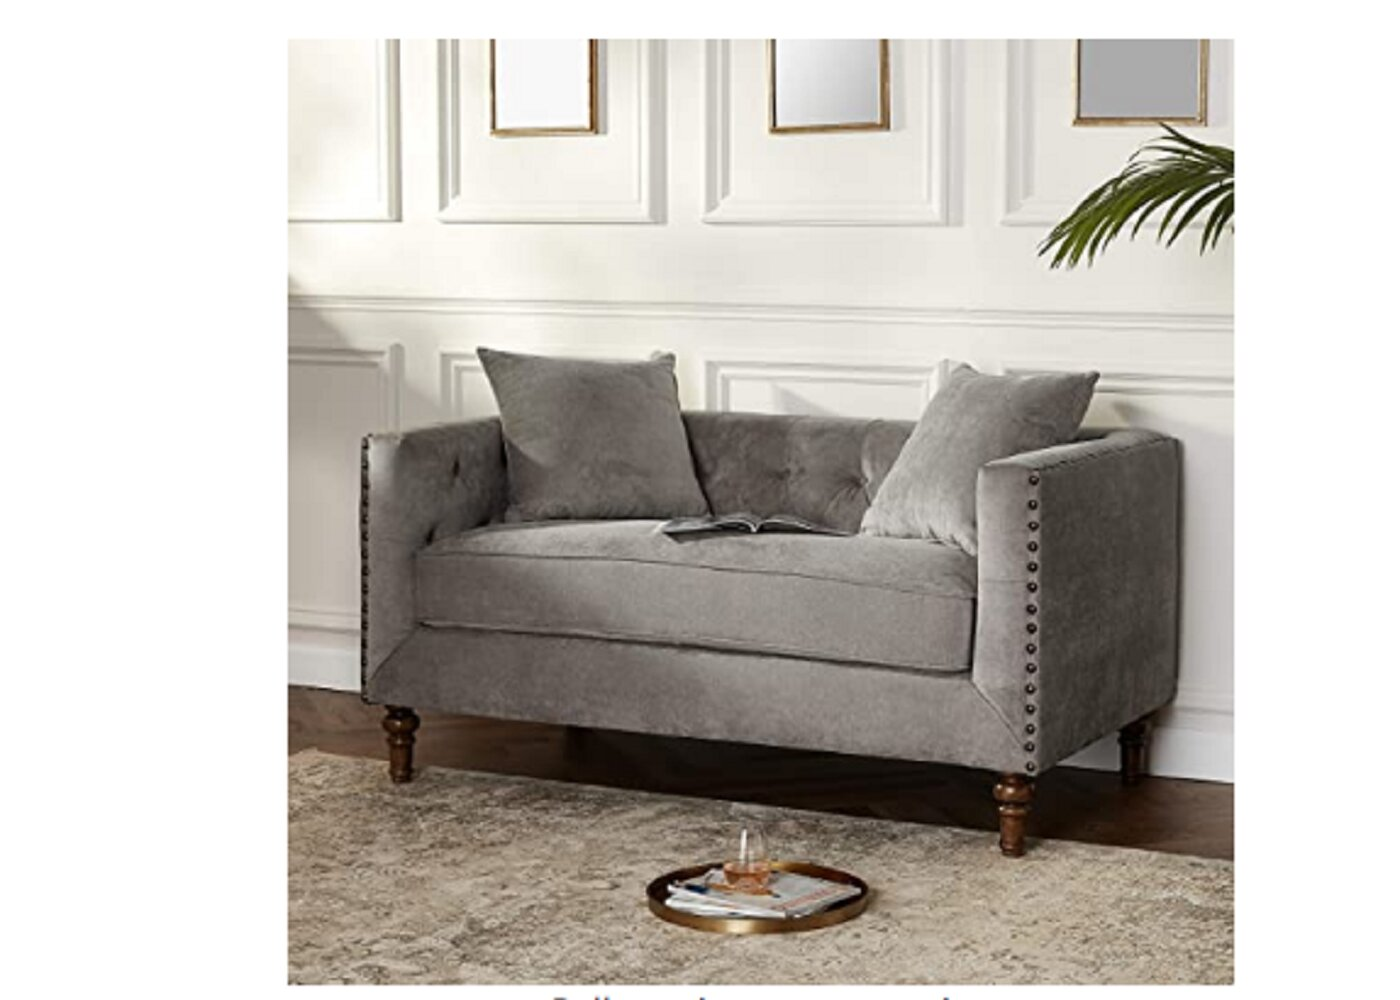 Loveseat Darby Home Co Office Sofas Loveseats You Ll Love In 2021 Wayfair